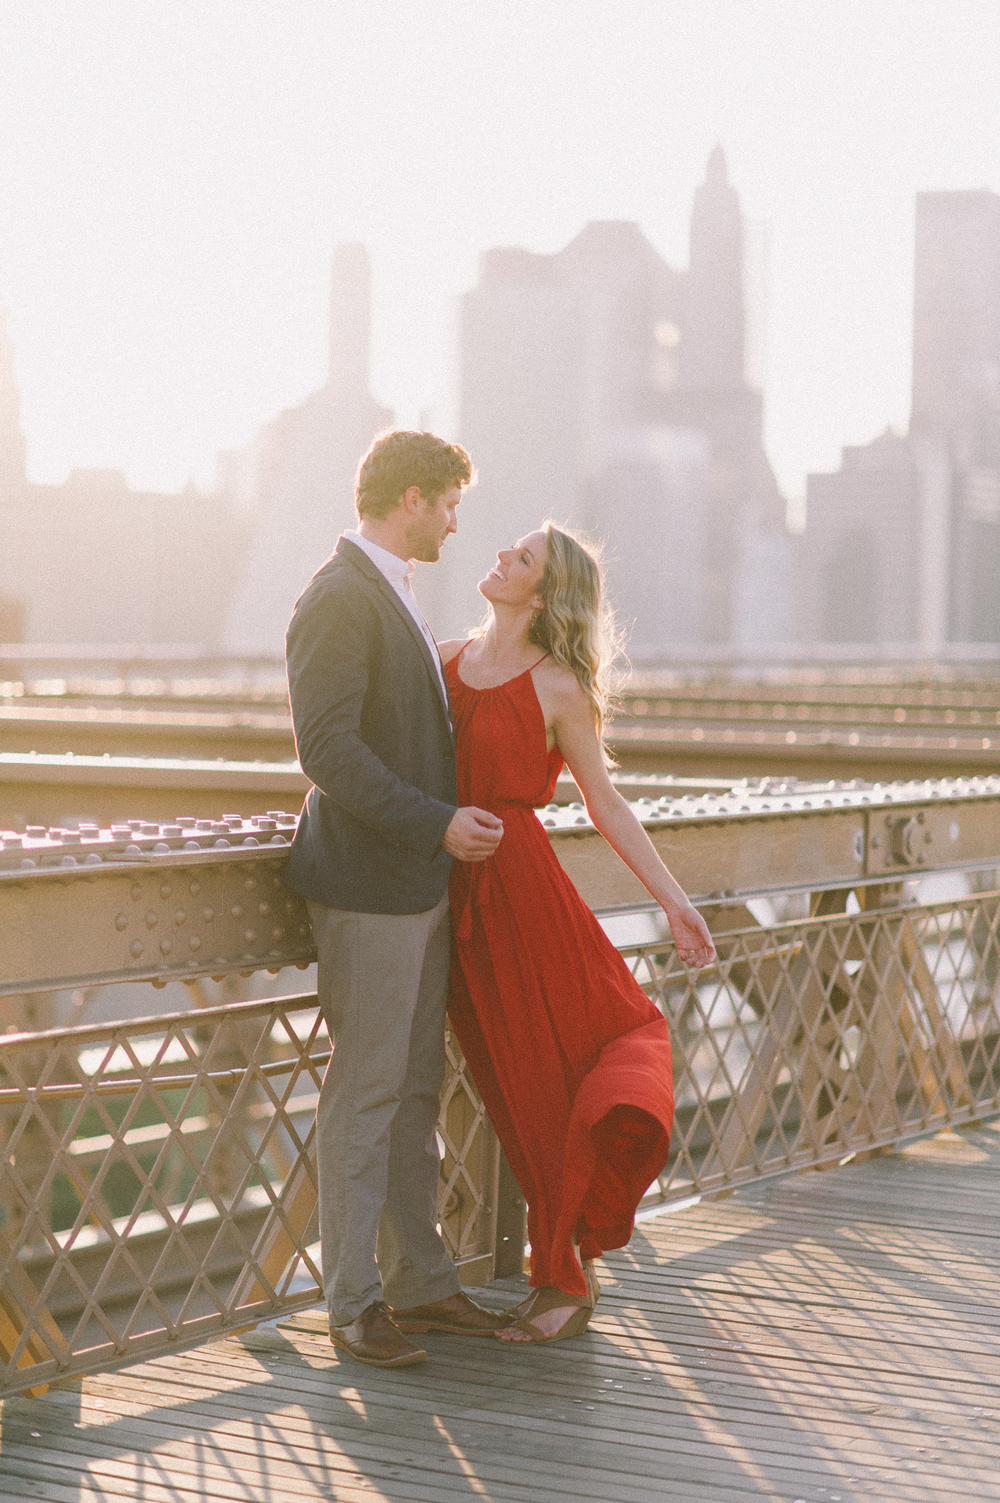 BrooklynBridge.Dumbo.Engagements16.jpg